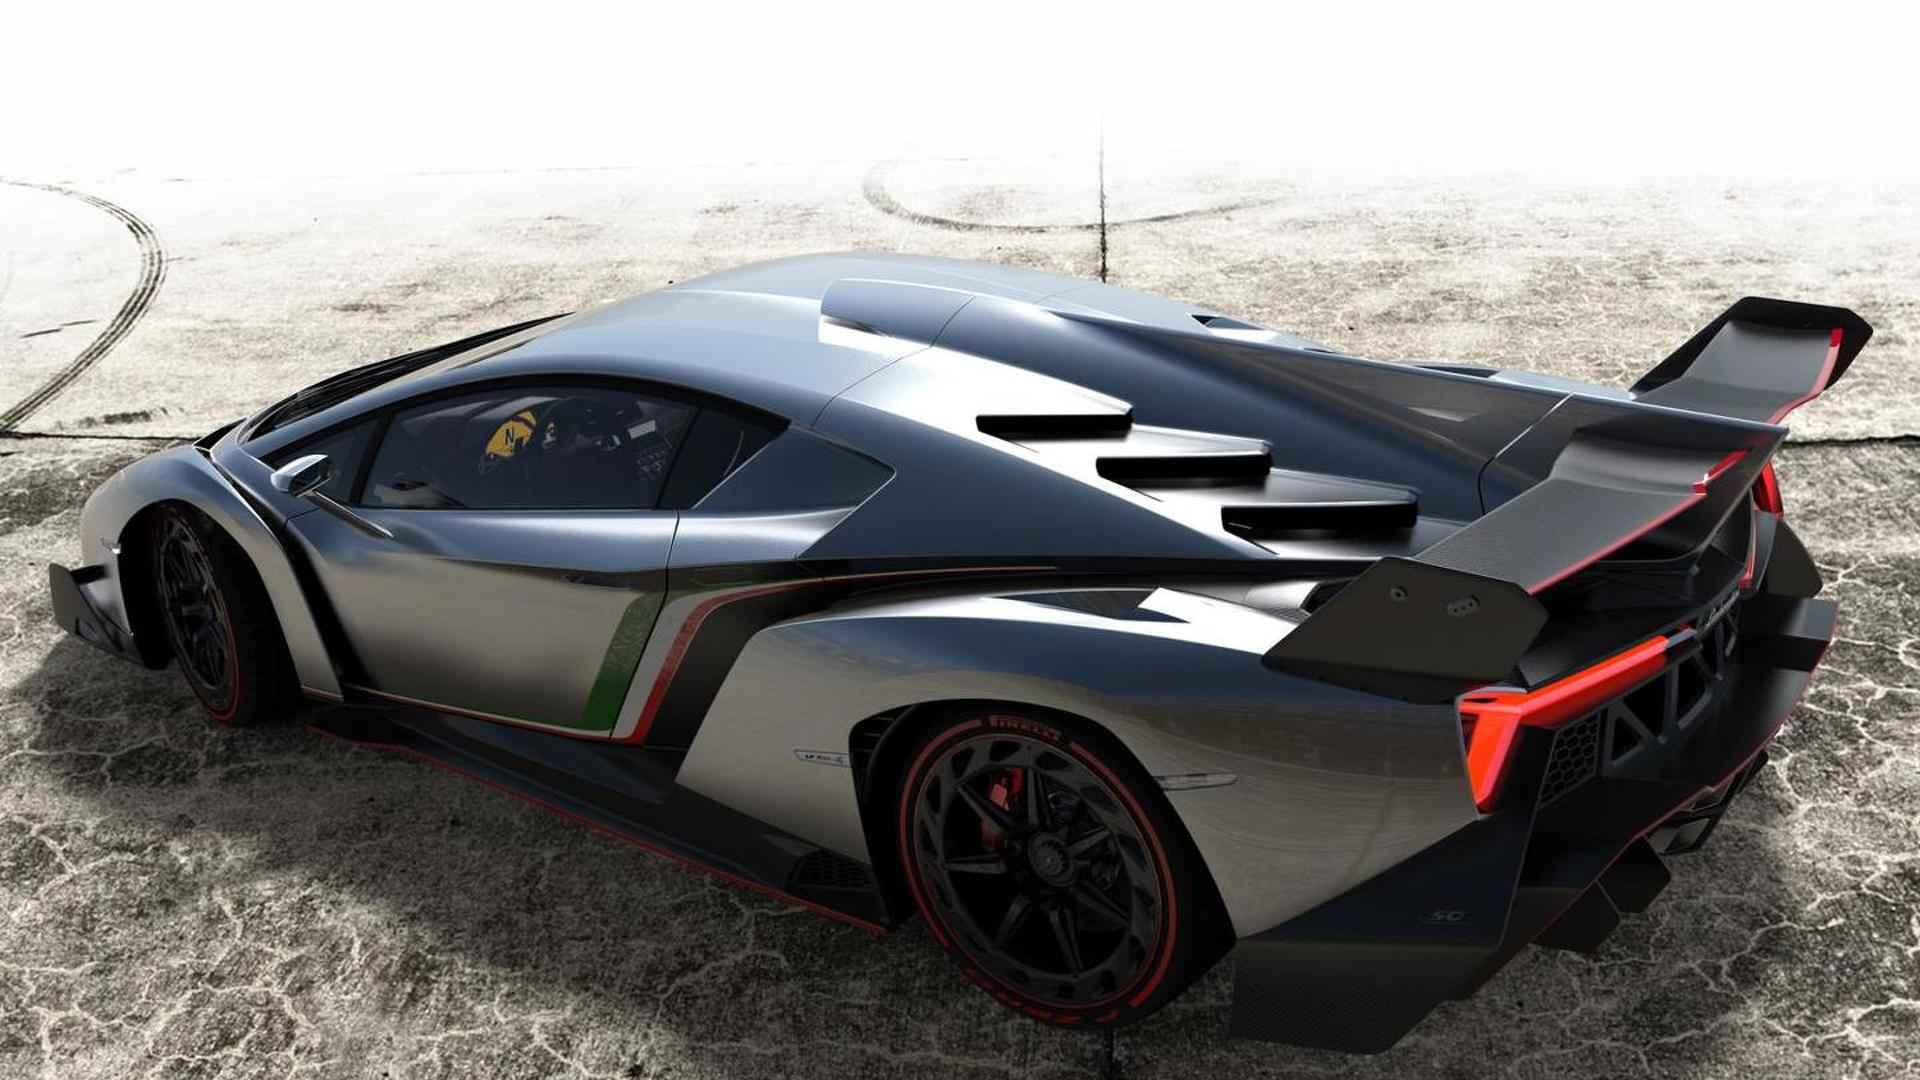 [OFFICIAL PHOTOS ADDED] Lamborghini Veneno hypercar leaked prior to Geneva debut